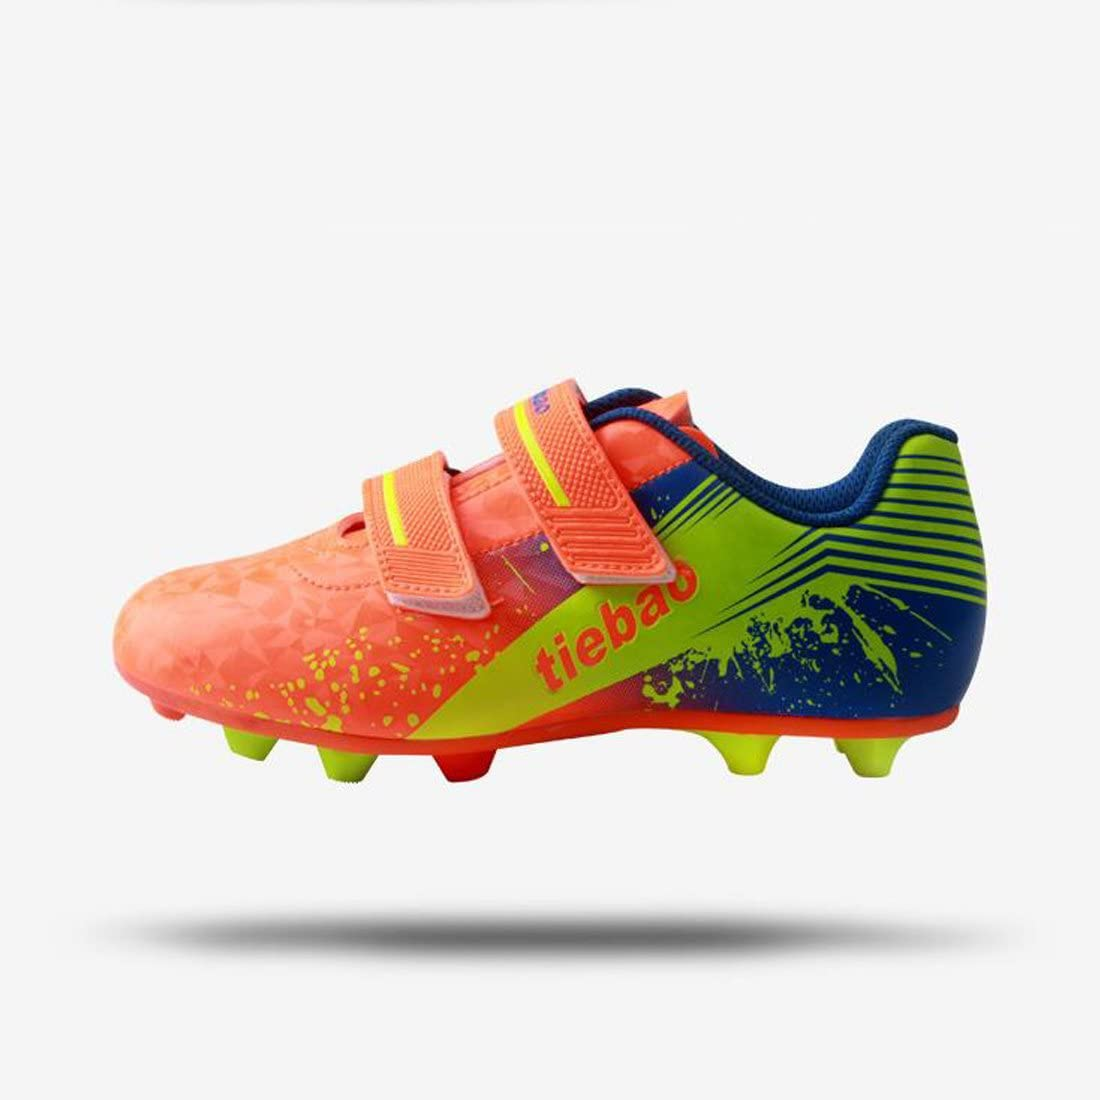 Yitaotaous Youth Soccer Shoes Indoor Soccer Ball Shoes for Kids